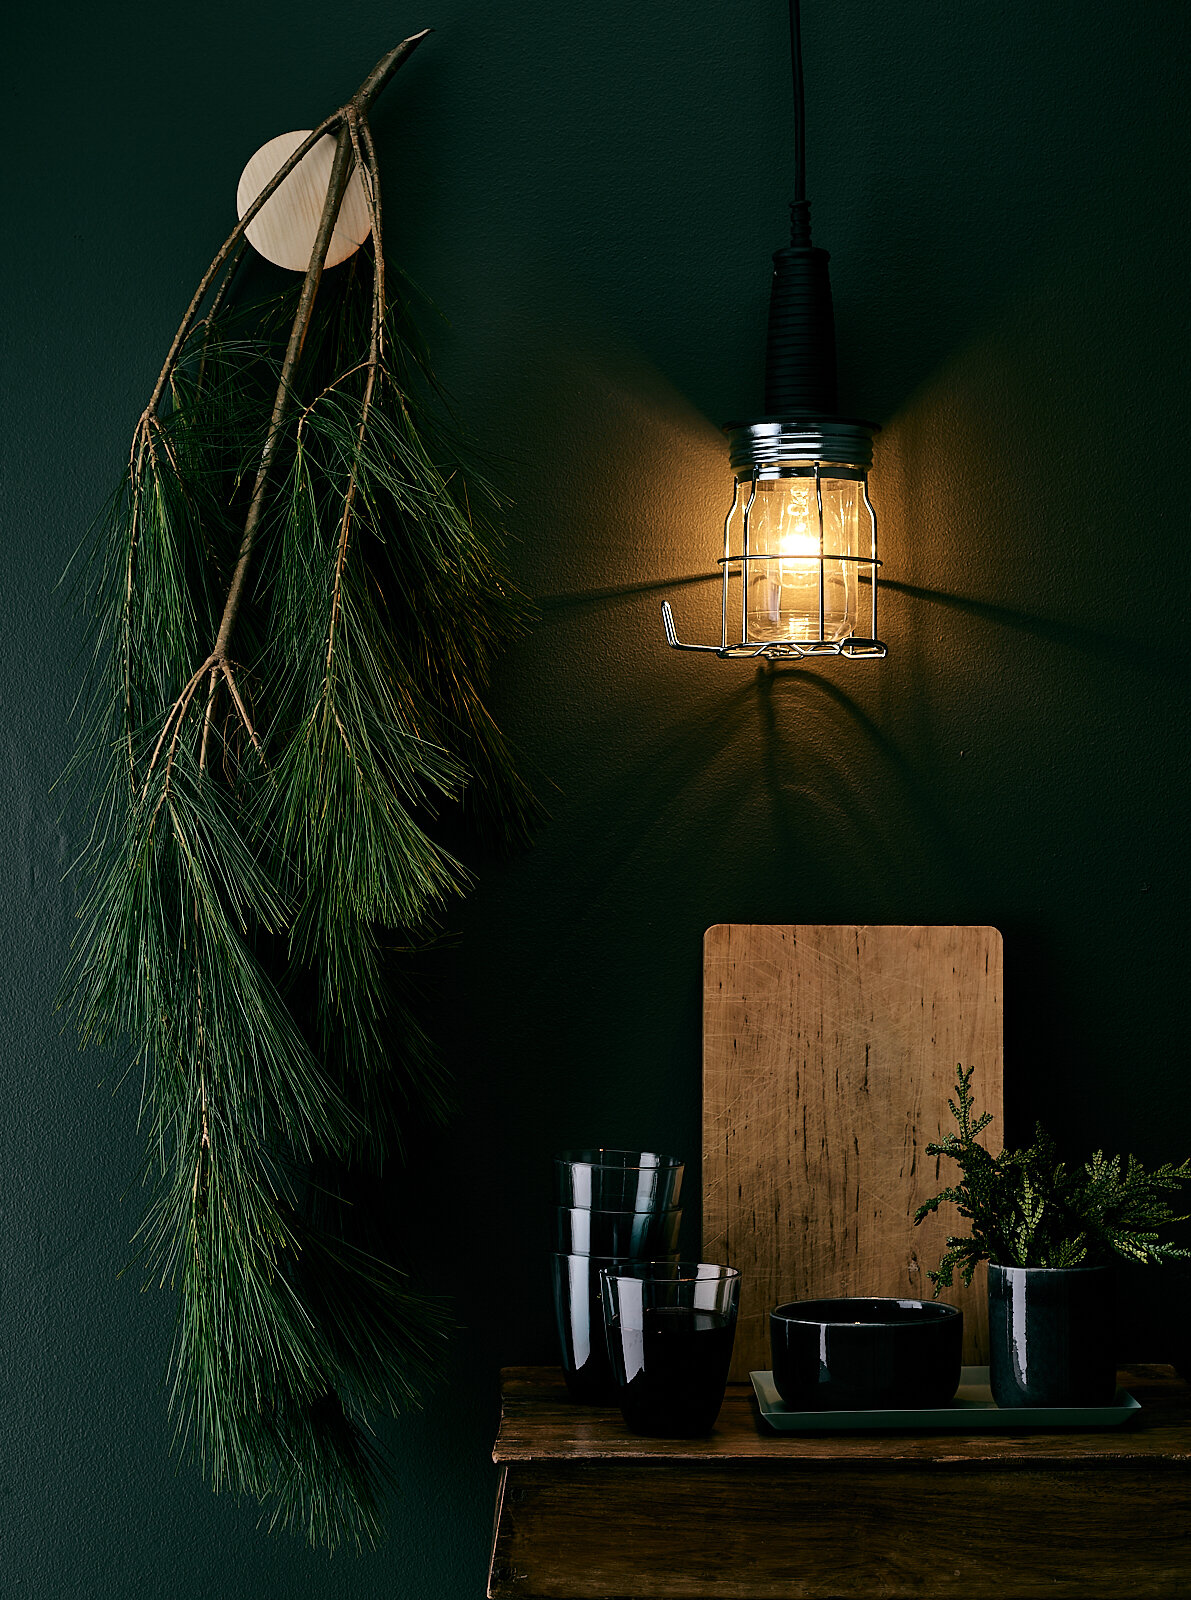 styling-interior-finnishdesign-winter.jpg